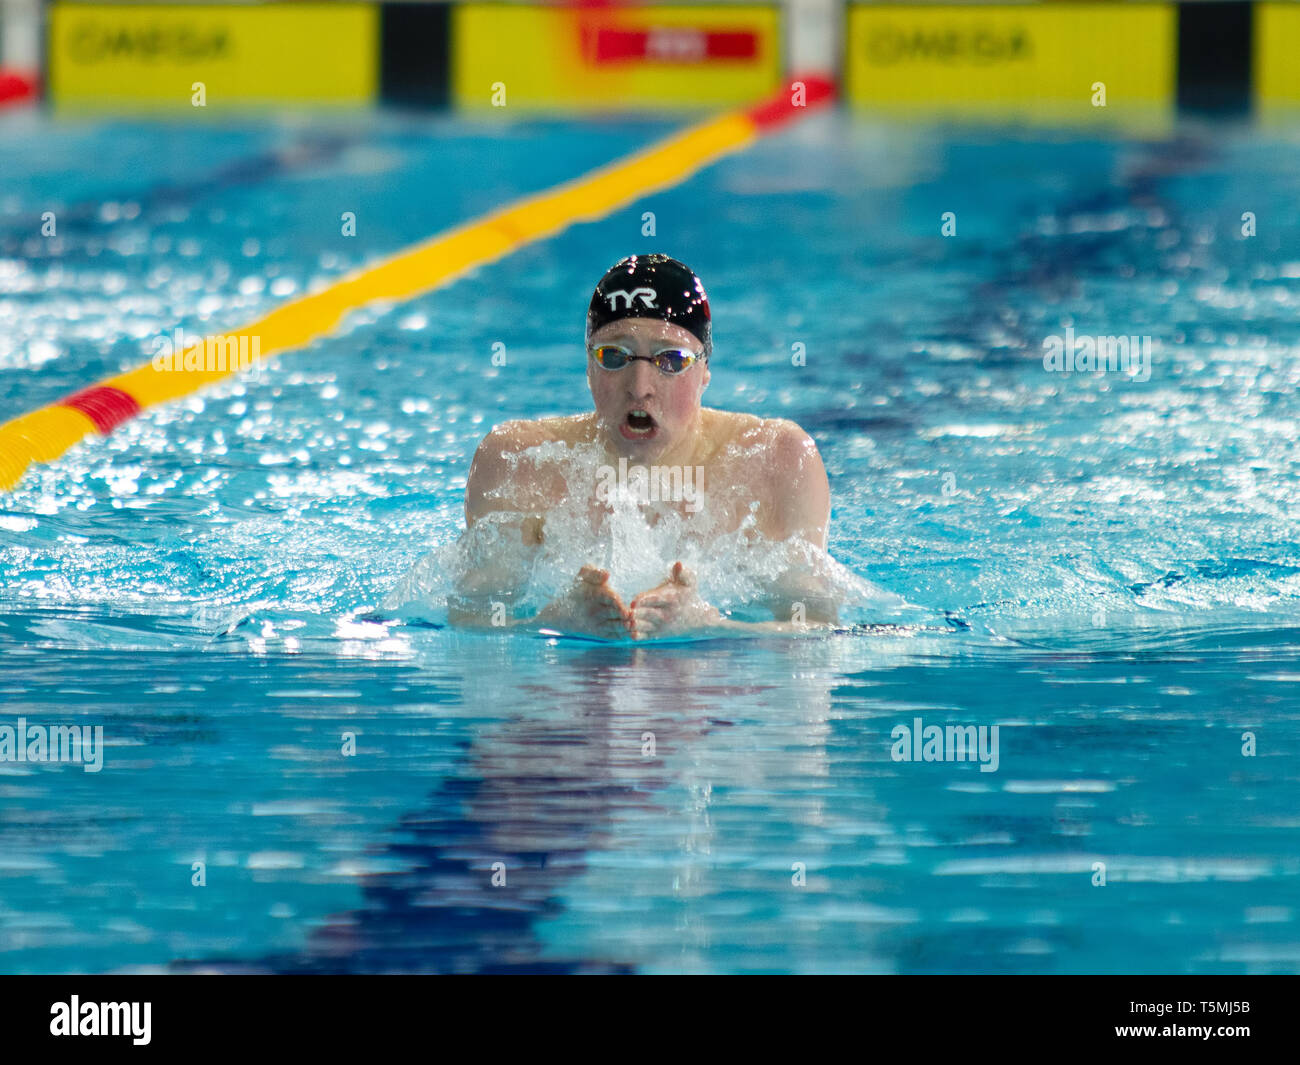 Max Litchfield (Loughborough National Centre) in action during the men's open 400 metres individual medley final, during Day 3 of the 2019 British Swi - Stock Image